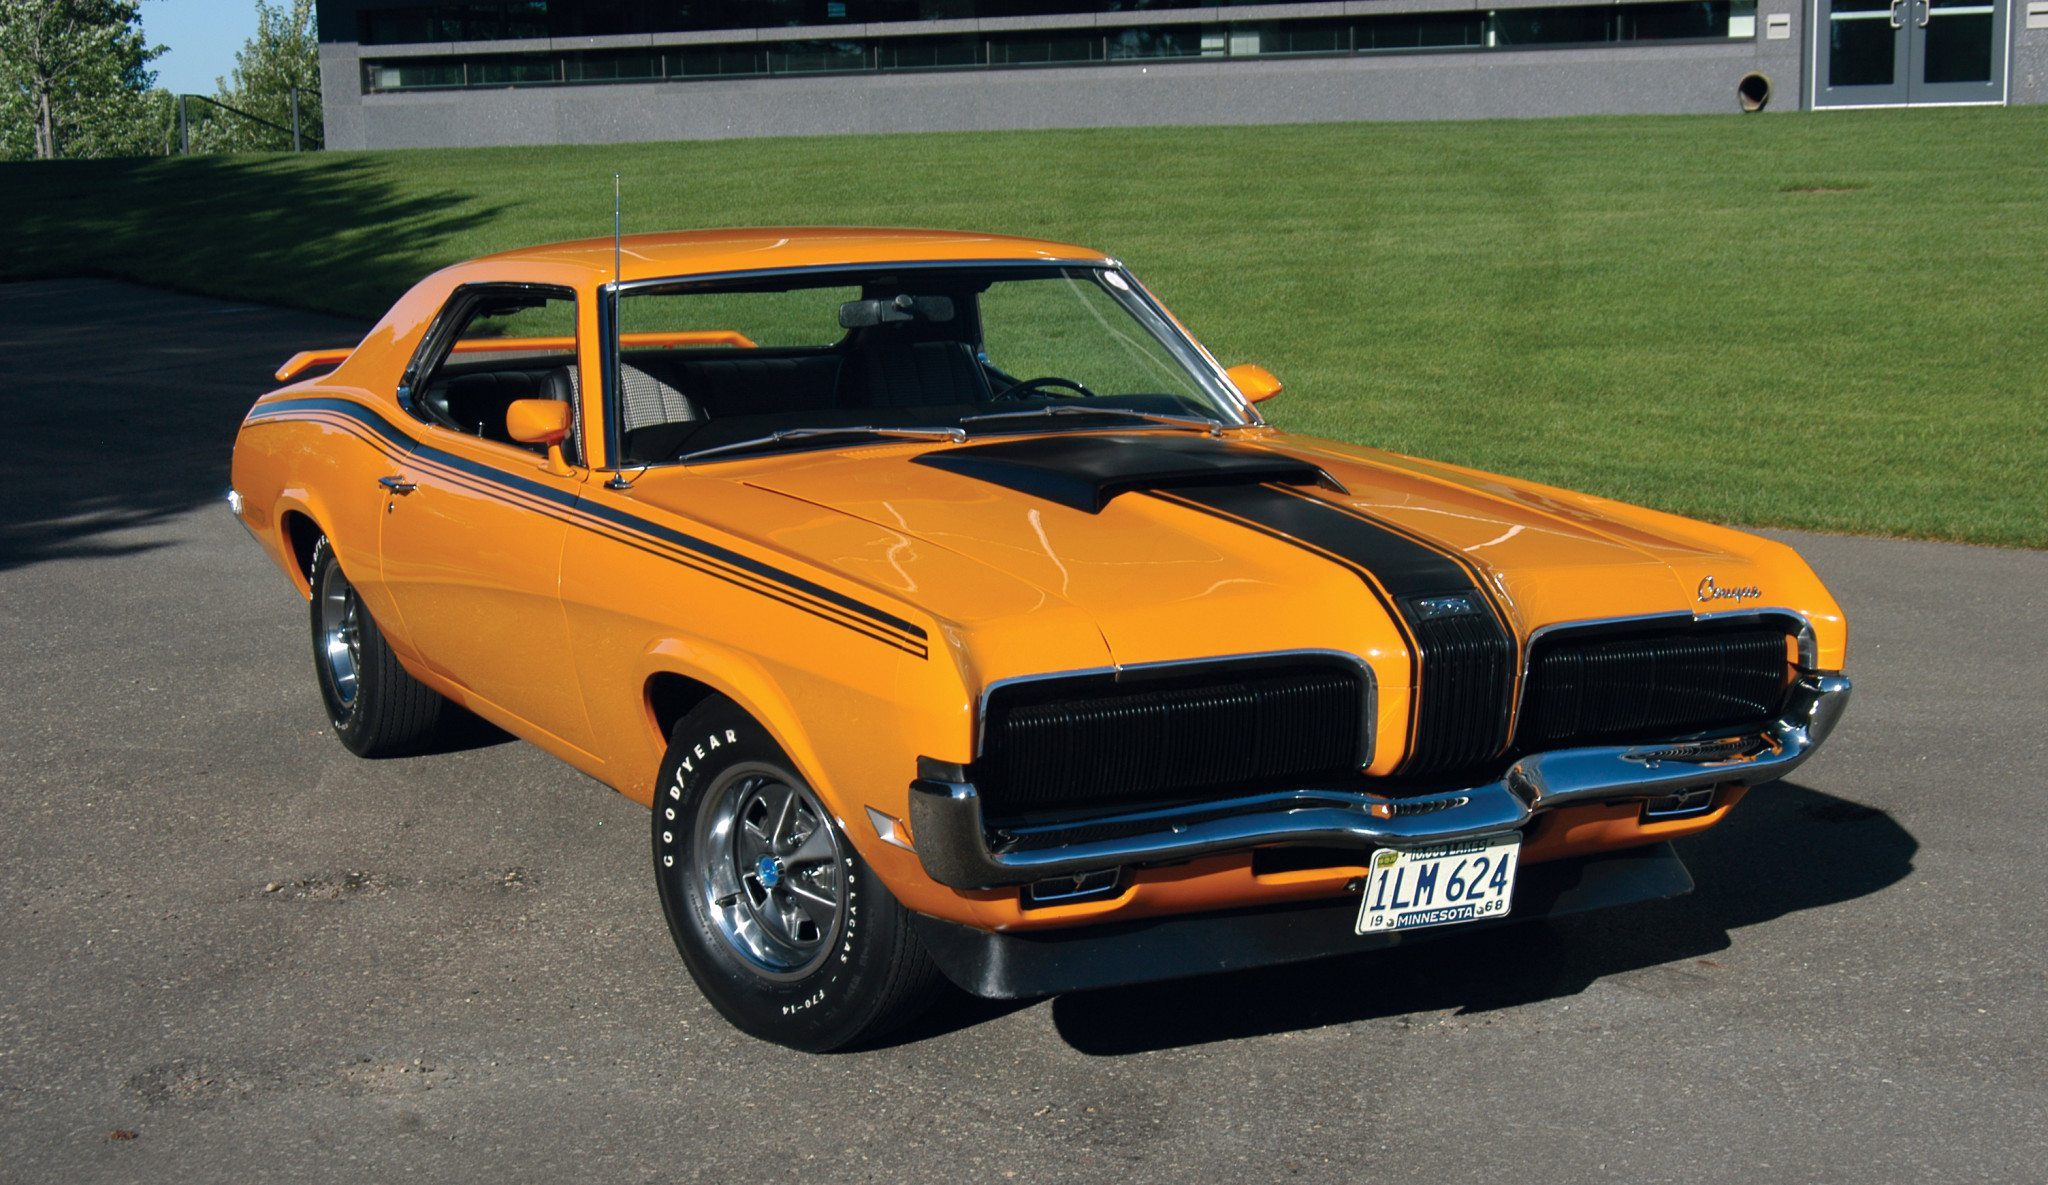 The 1970 Mercury Cougar Eliminator Was a Classy Mach One Mustang